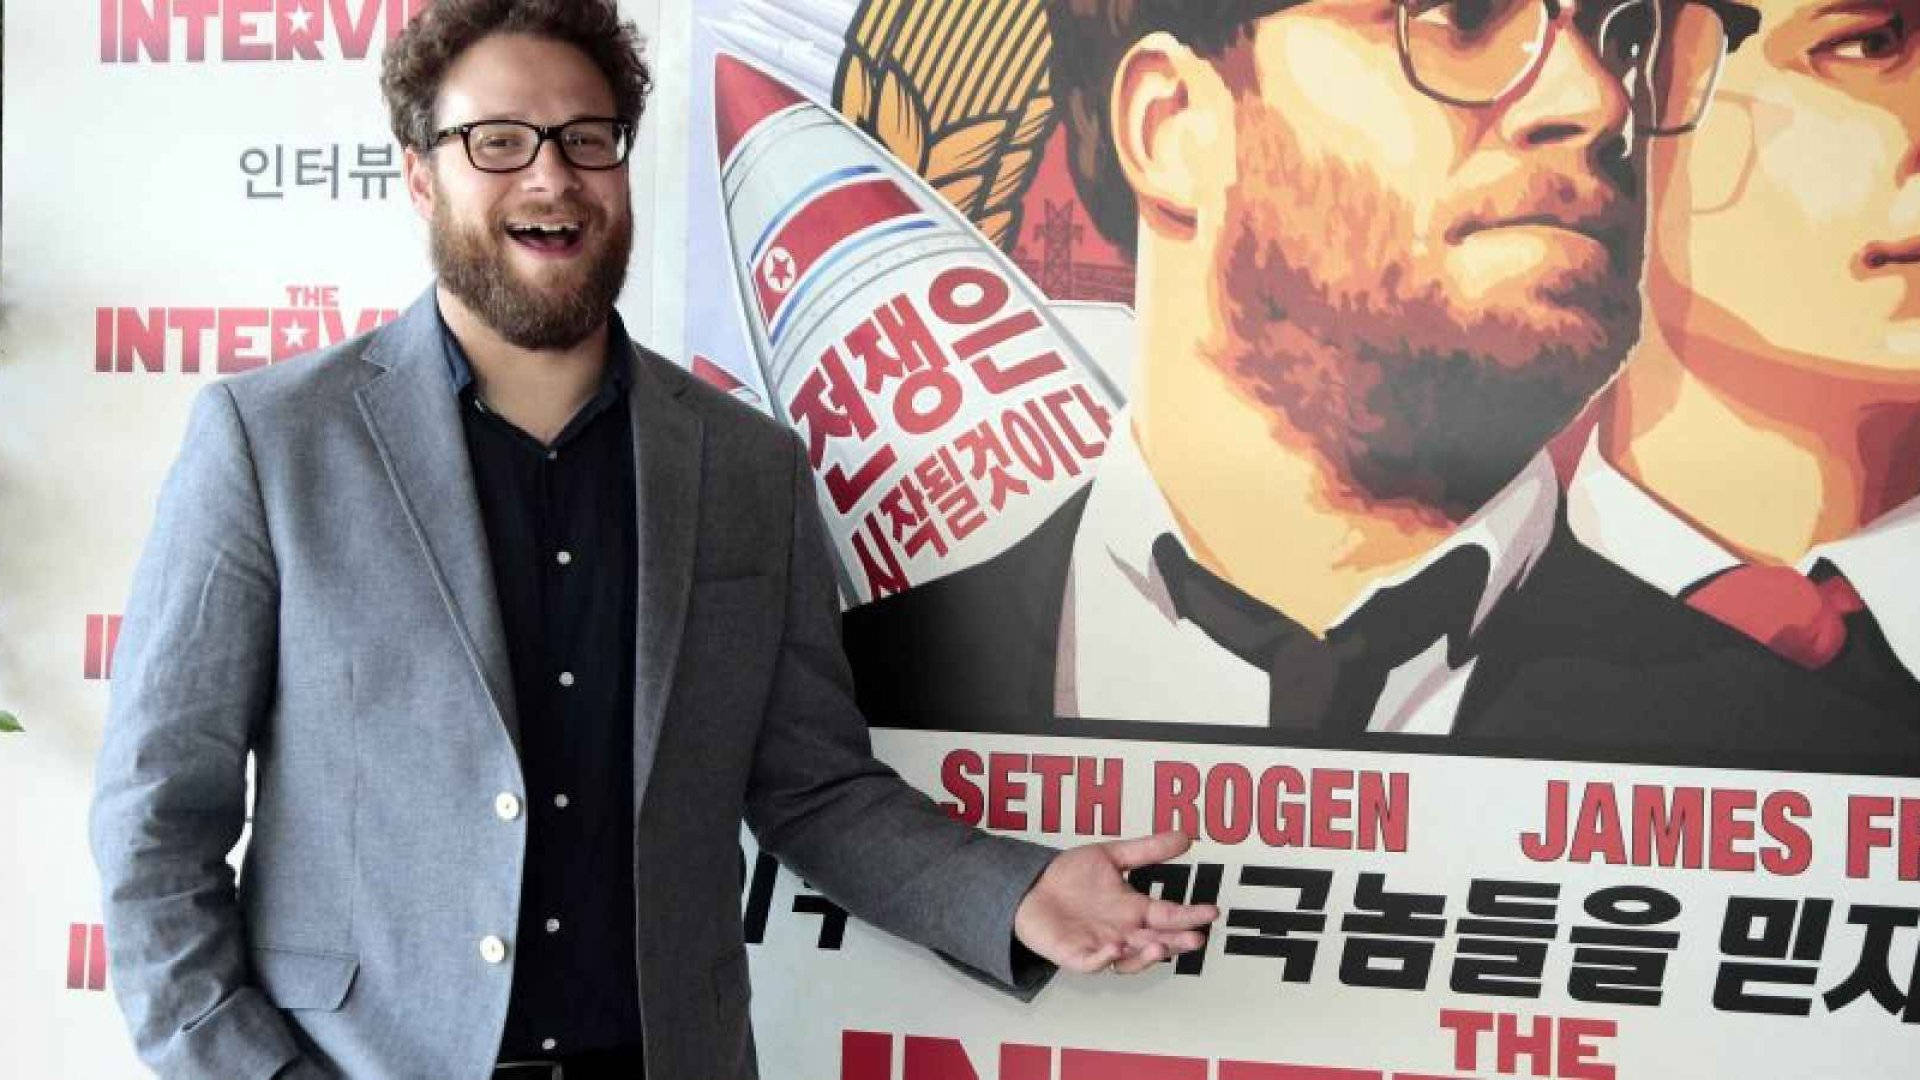 Sony's 'The Interview' Brought In More Than $15 Million in Online Sales